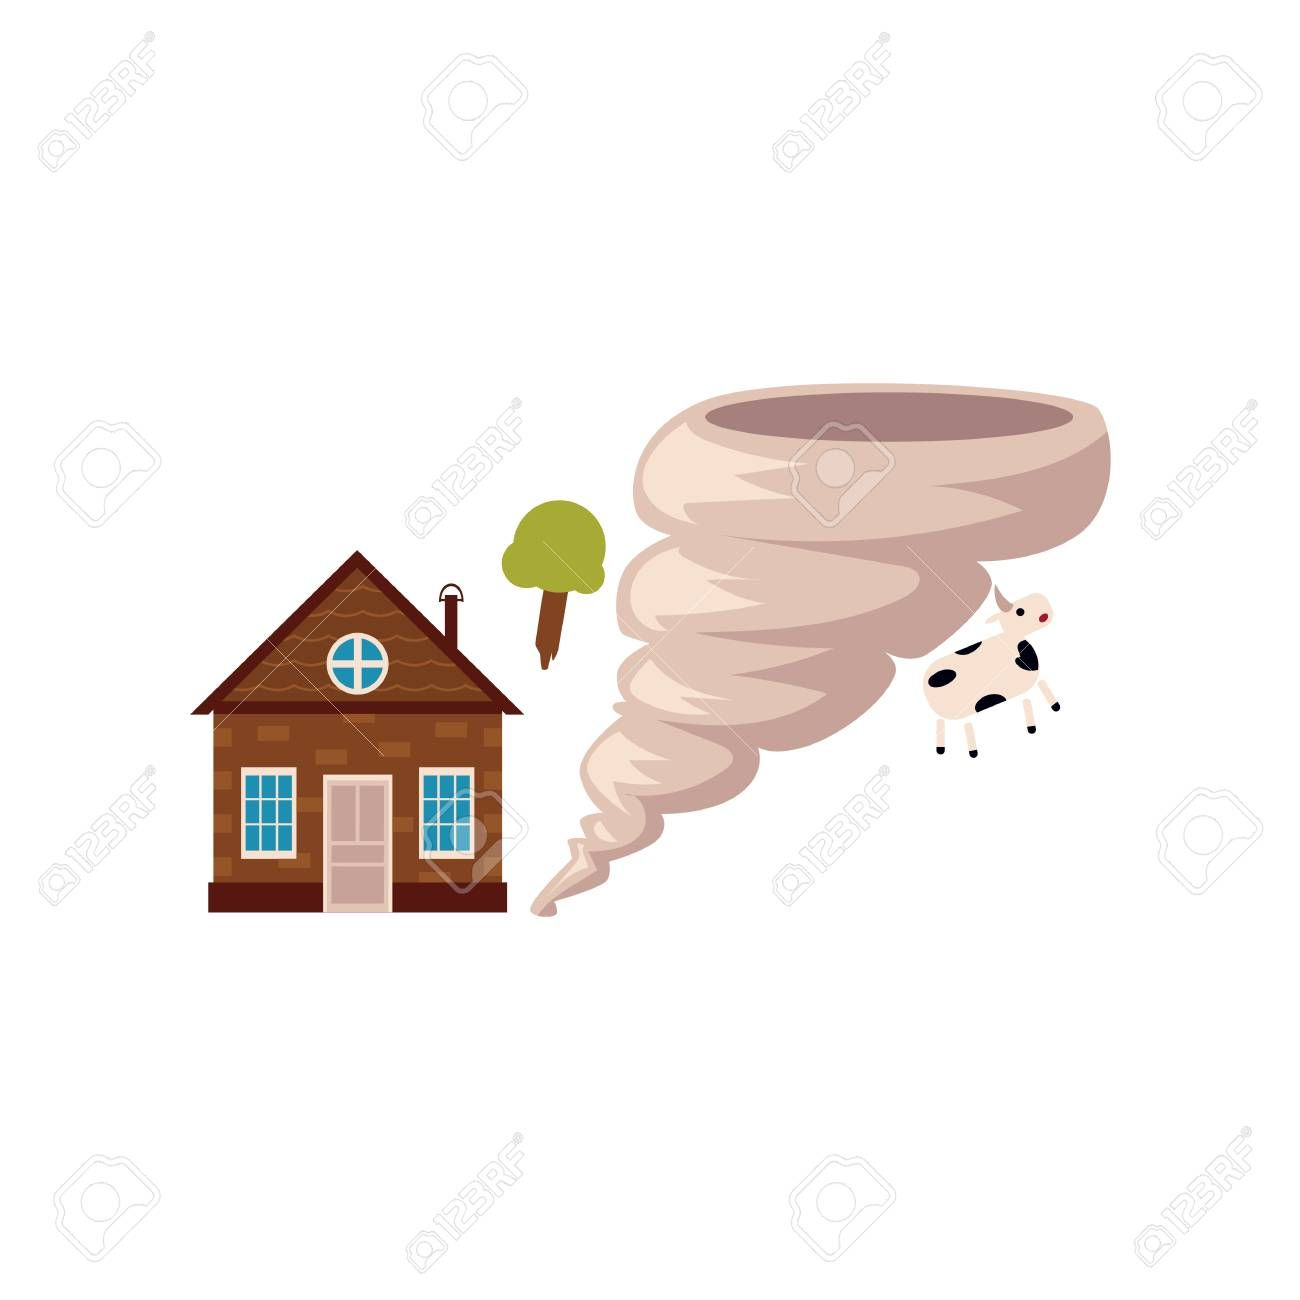 Cottage House In Danger Of Being Destroyed By Storm Hurricane Tornado Cartoon Vector Illustration Isol Cottage Homes Home Insurance Building Cartoons Vector